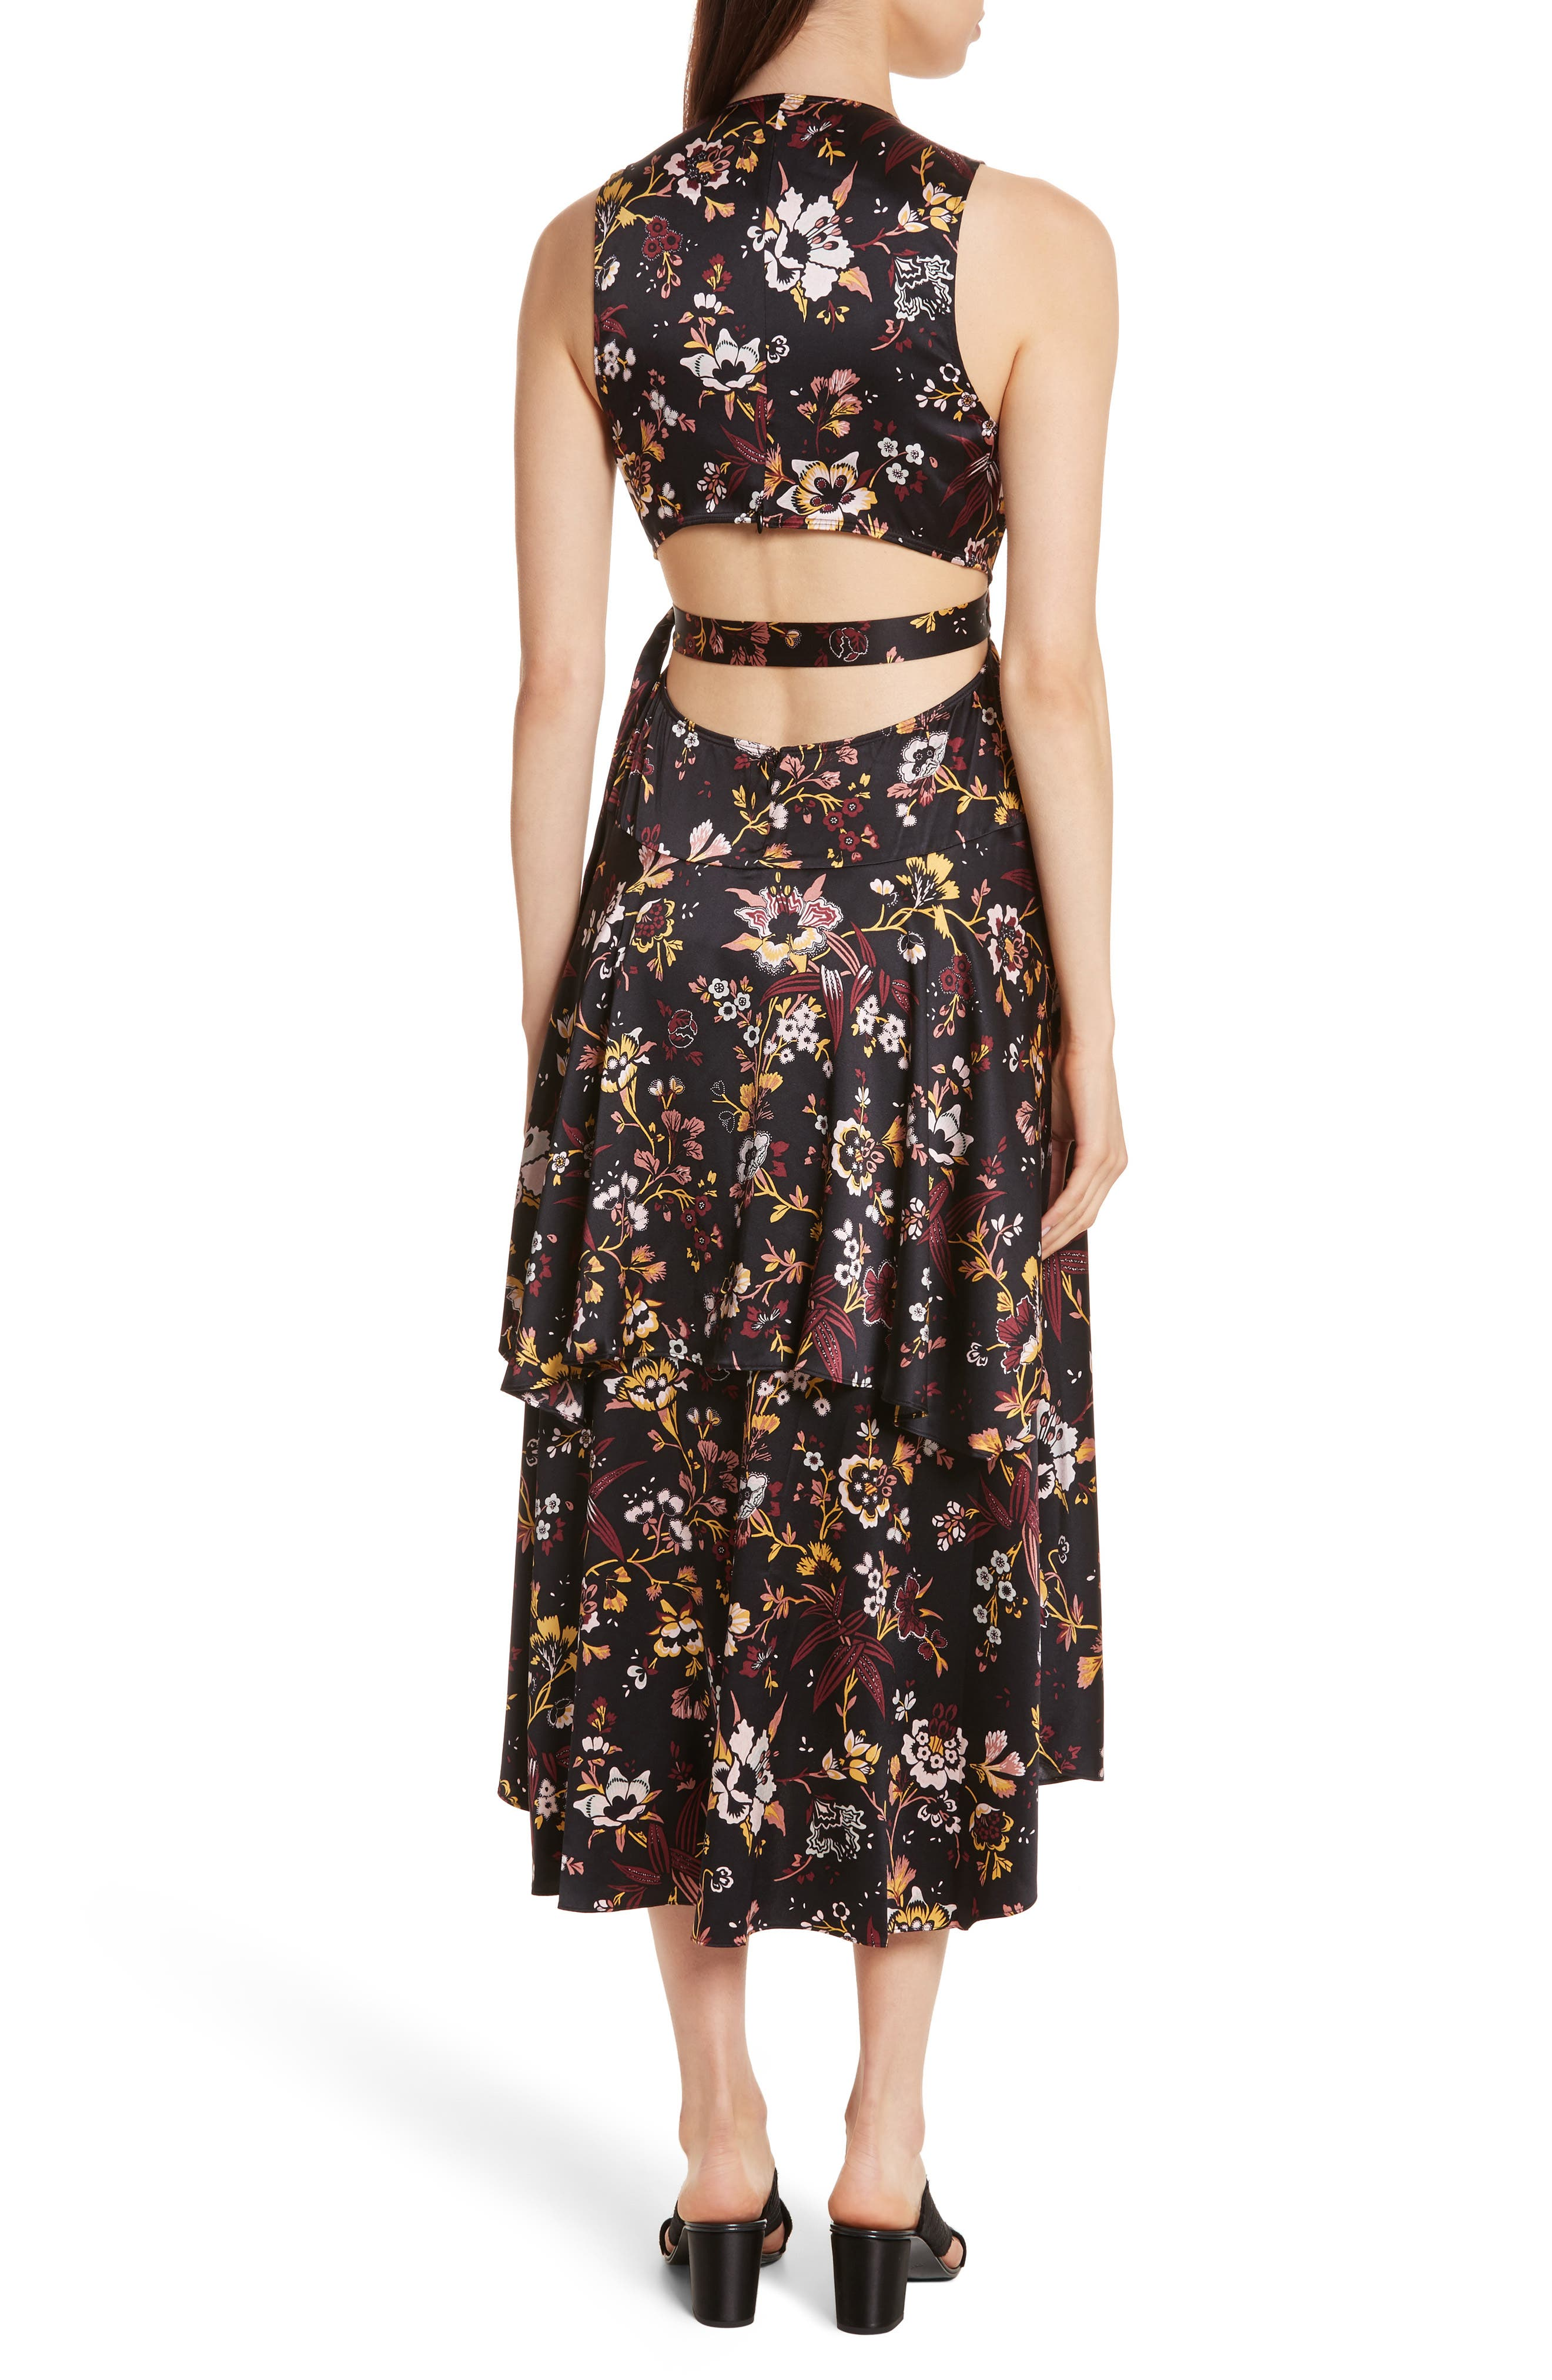 Verbena Floral Print Stretch Silk Dress,                             Alternate thumbnail 2, color,                             Black/ Grey/ Mustard